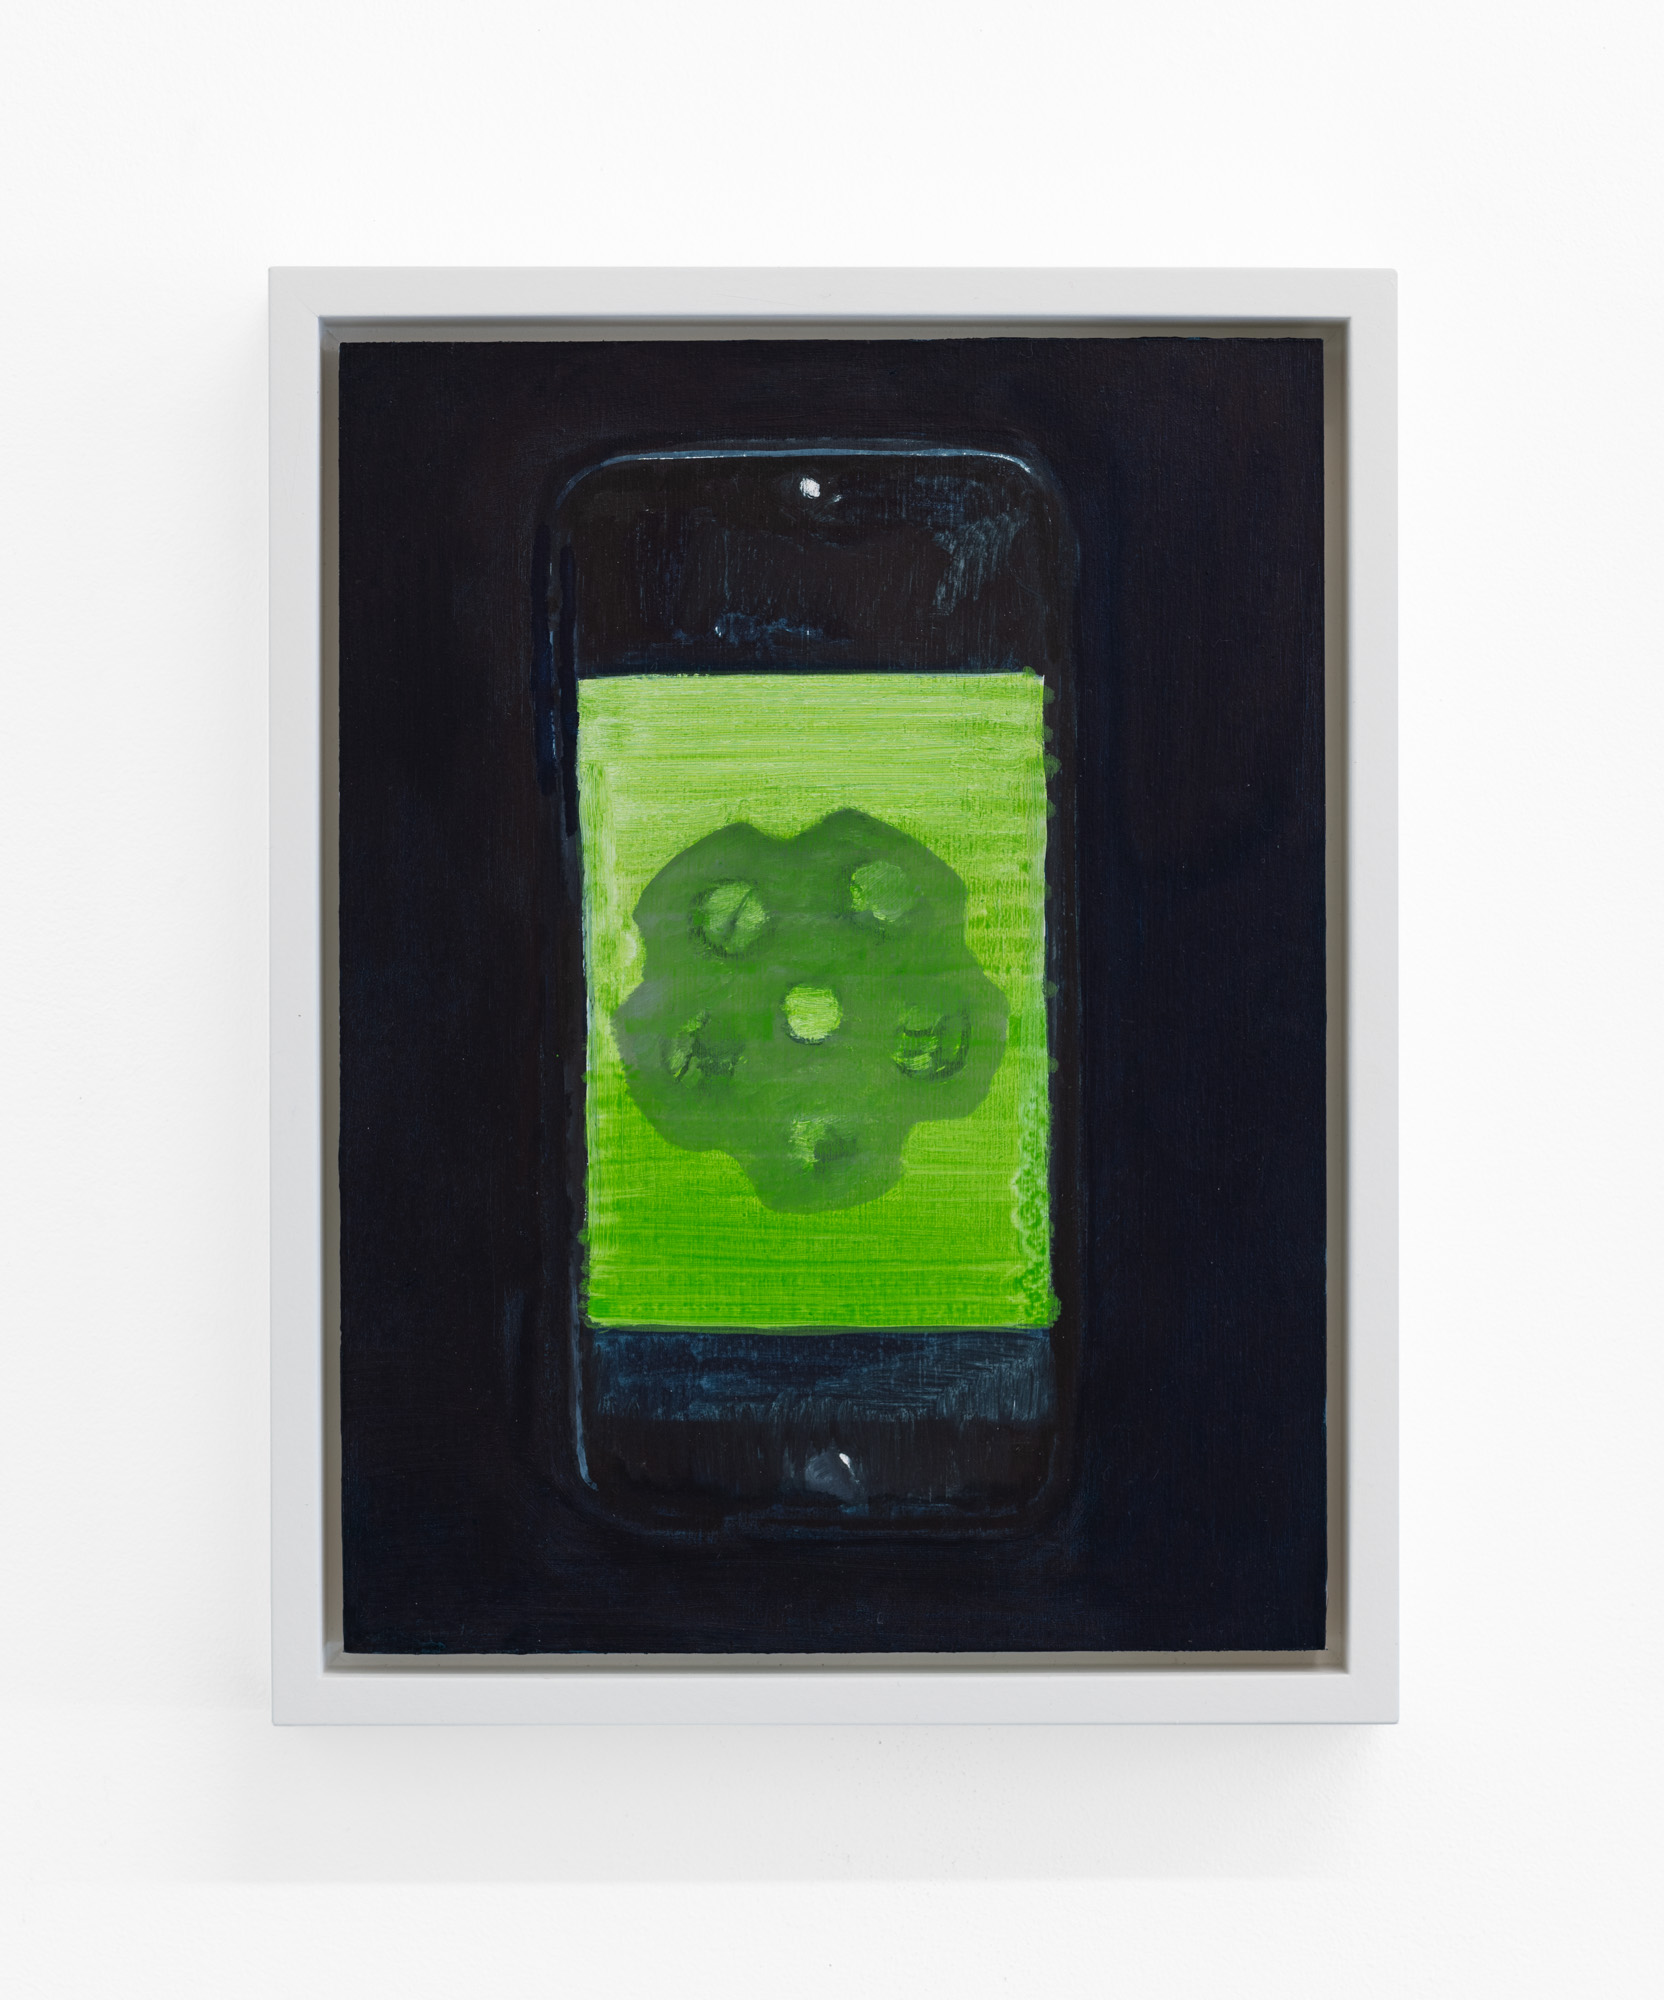 Phone (Fentanyl) , 2019, oil on panel, 12 x 9 inches